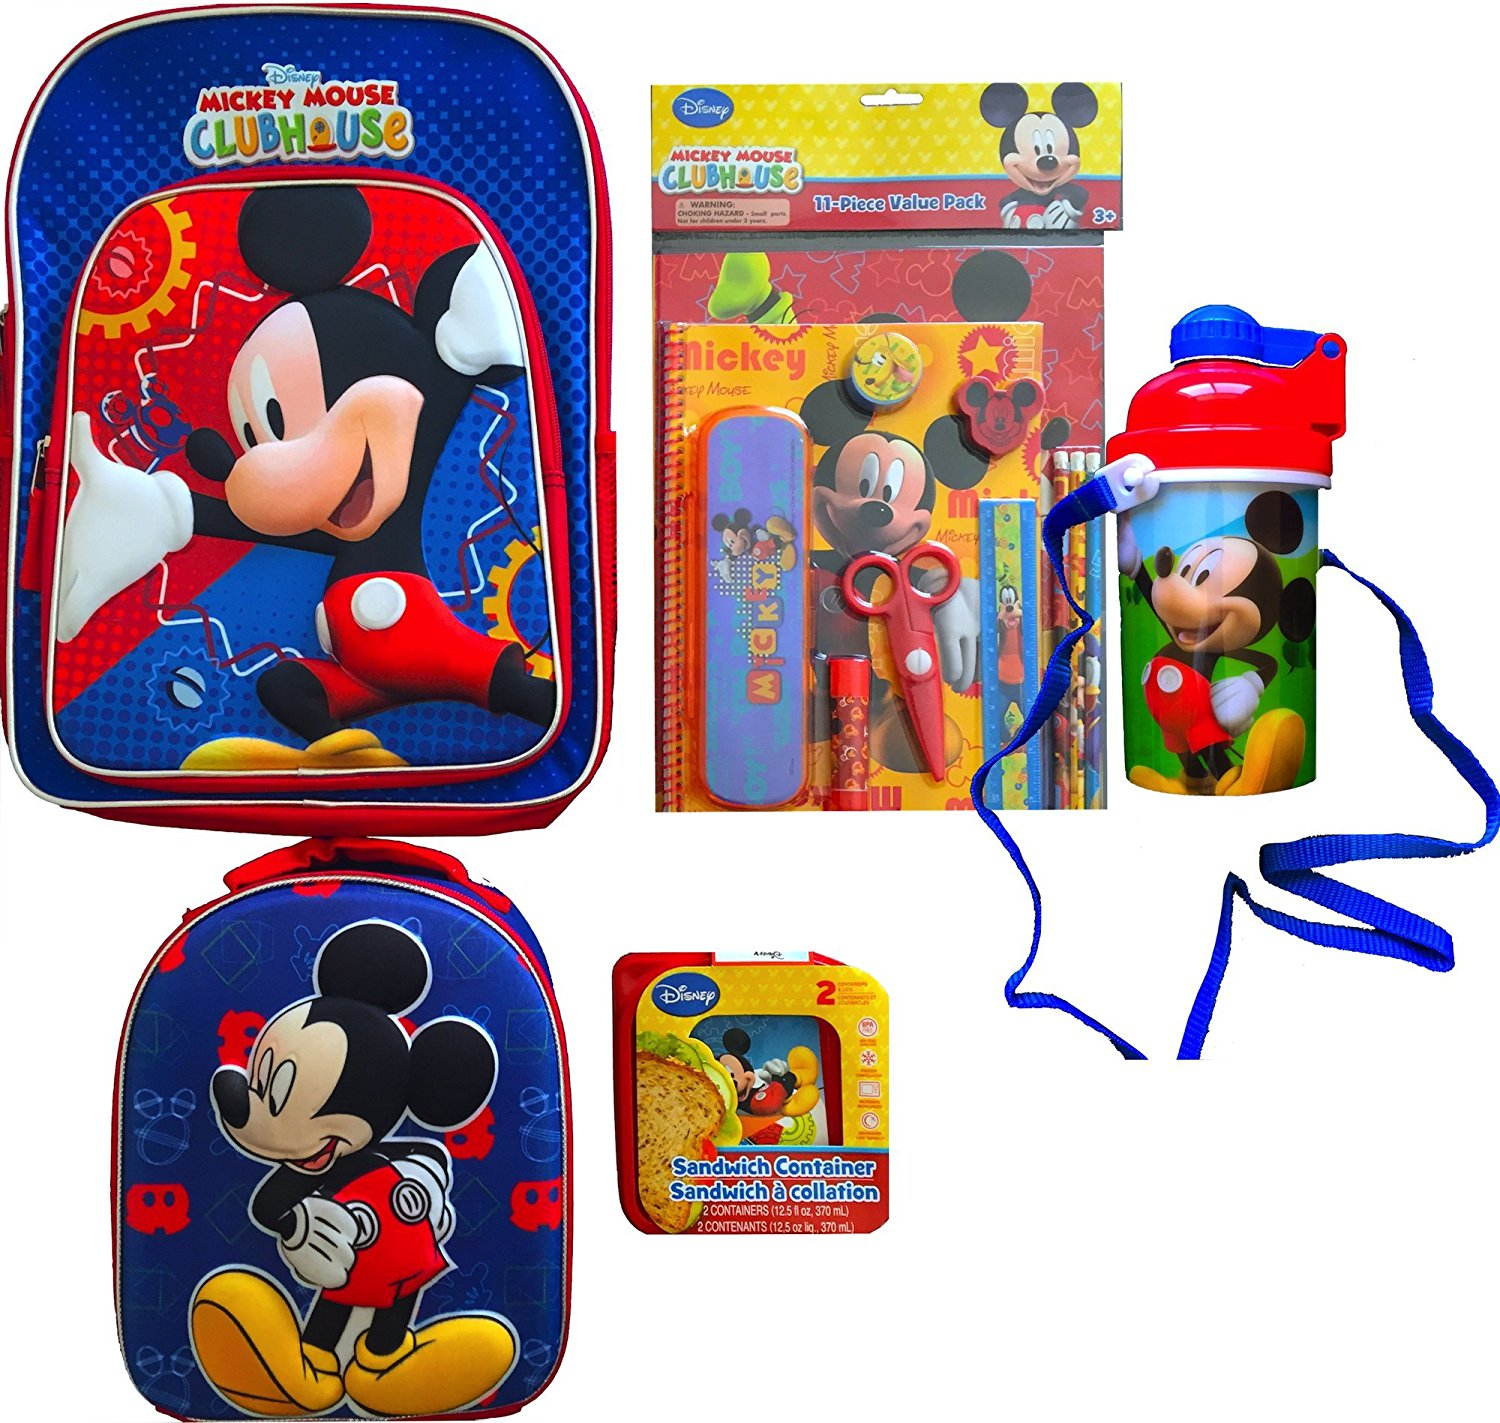 mickey mouse clubhouse childrens school backpack with mickey mouse lunch bag mickey mouse clubhouse 11 piece school supplies value pack - Mickey Mouse Clubhouse Christmas